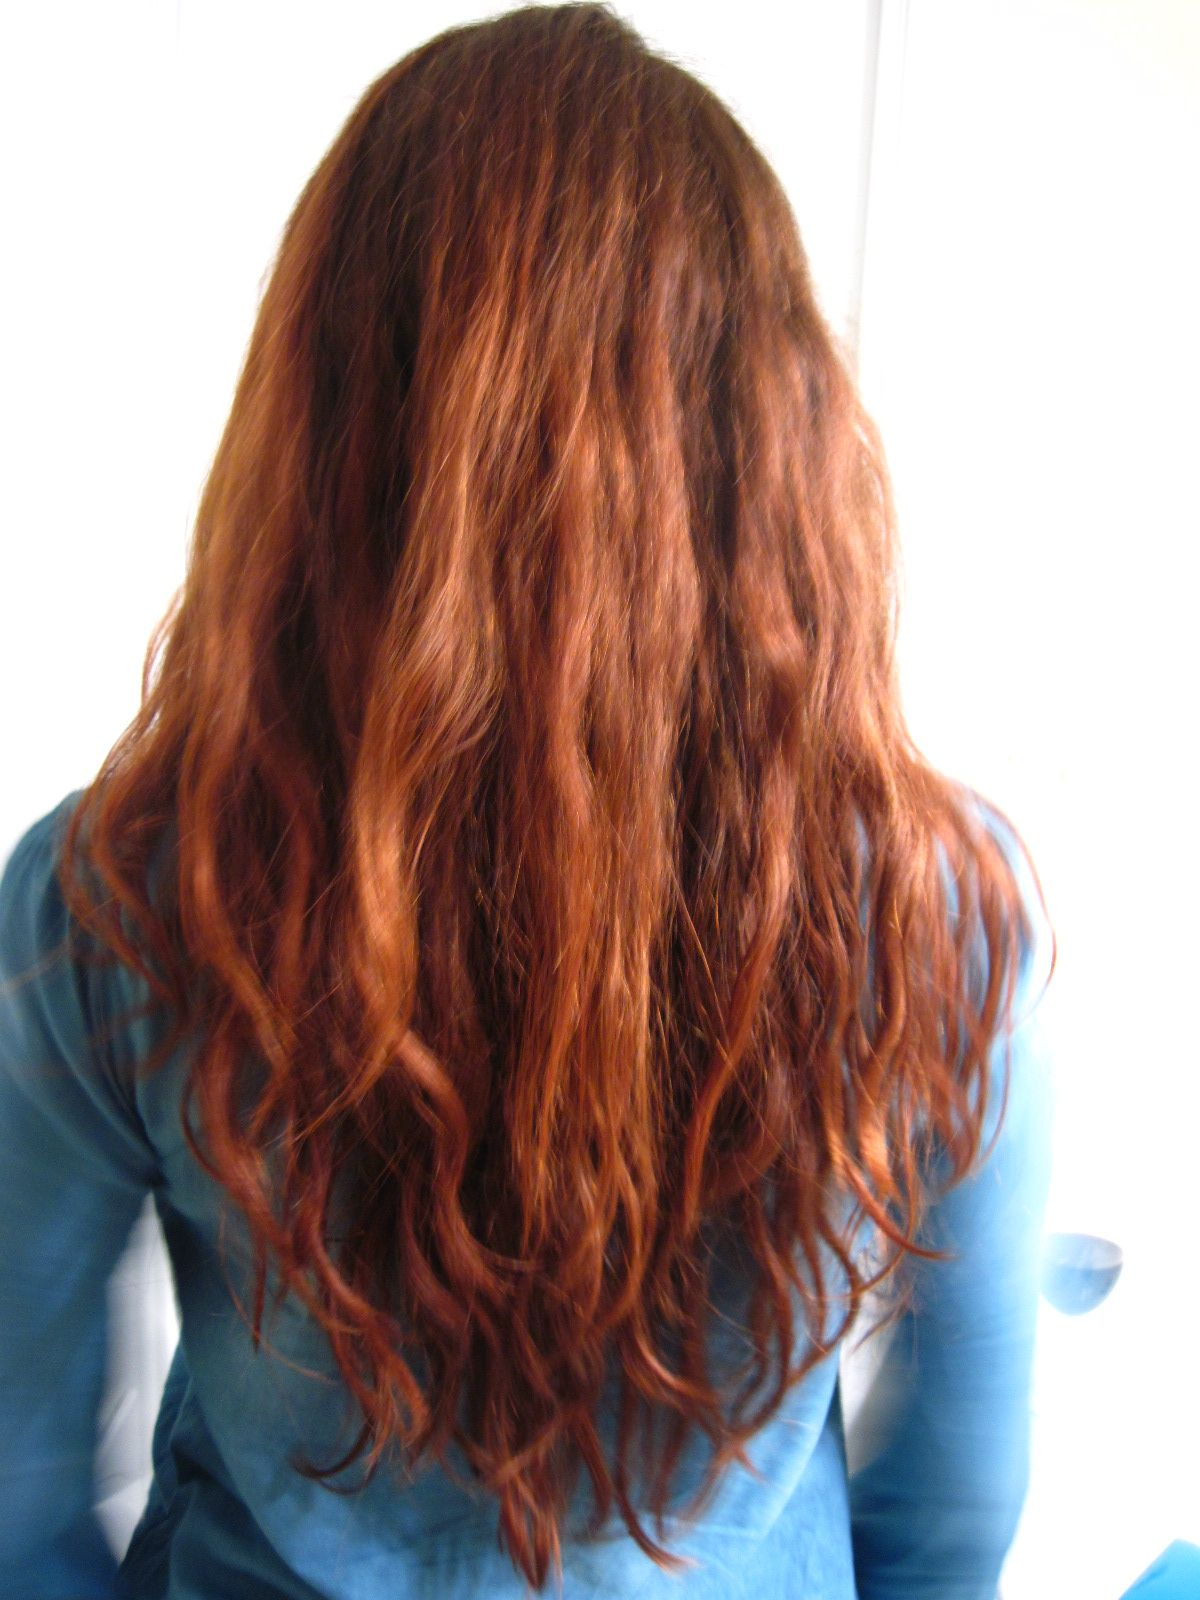 Danielle's hair after coloring with Light Mountain